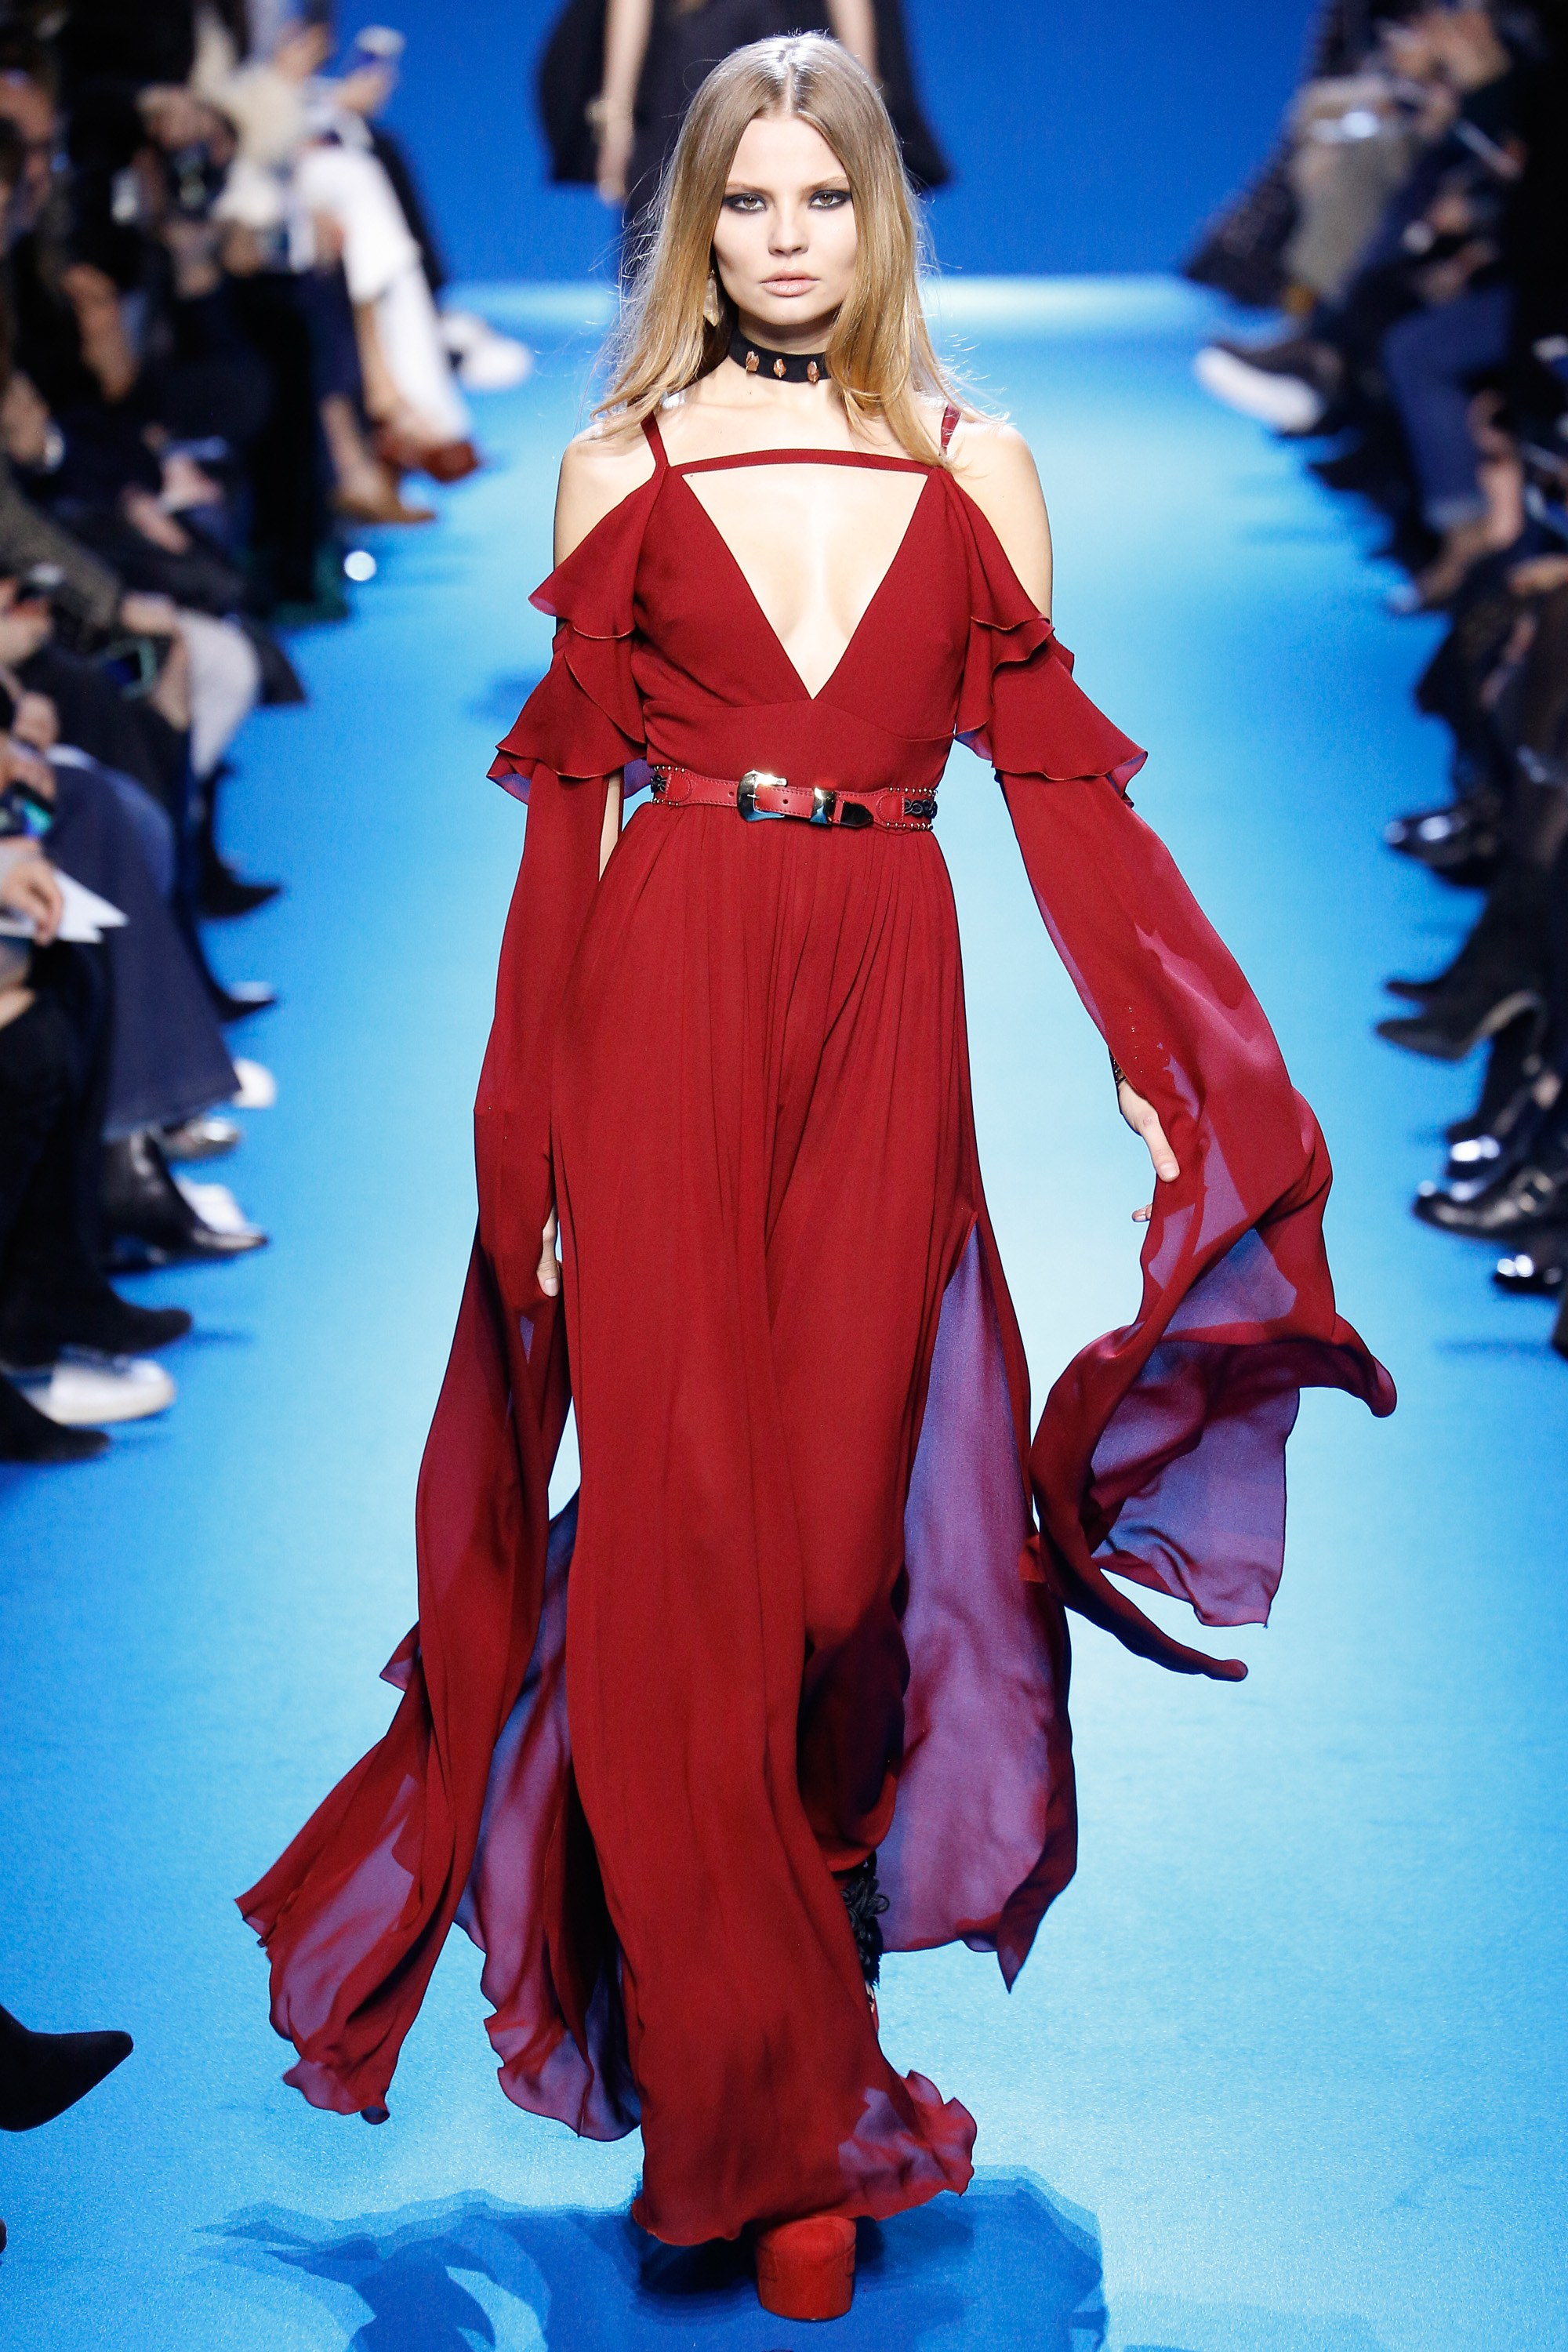 Elie Saab - How to Style a Jumpsuit - Model-Magdalena Frackowiak - Source Photo by Luca Tombolini, Indigital.tv via Vogue.